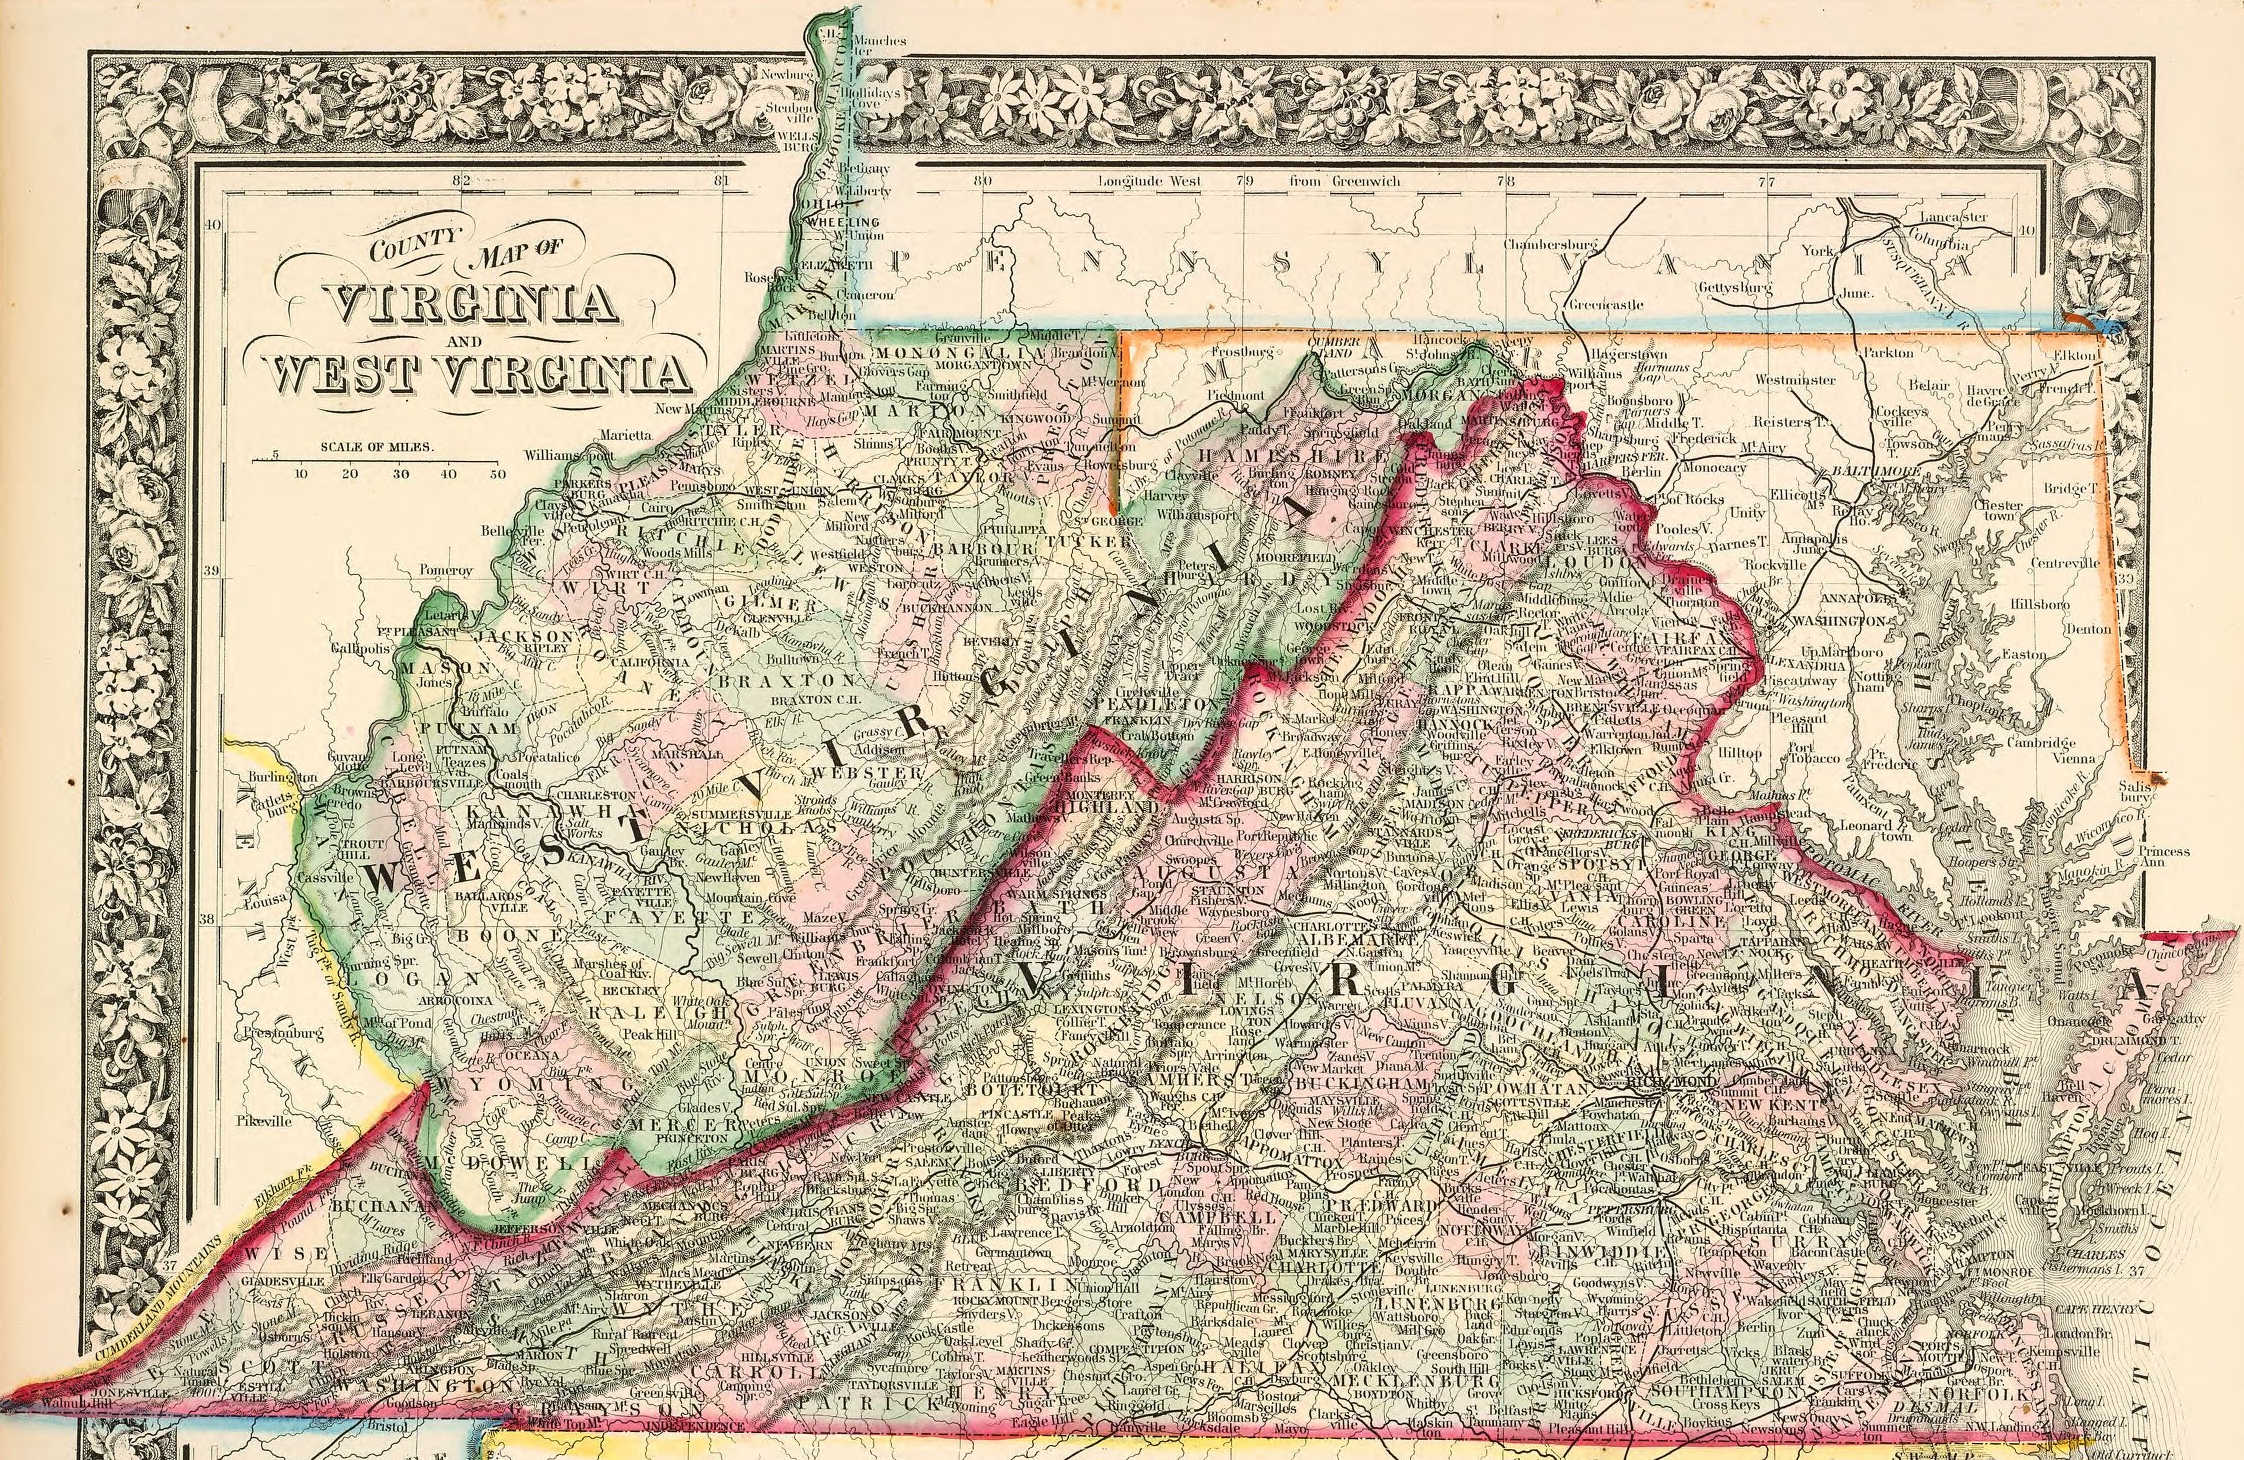 VirginiaWest Virginia Boundary - West virginia map showing counties